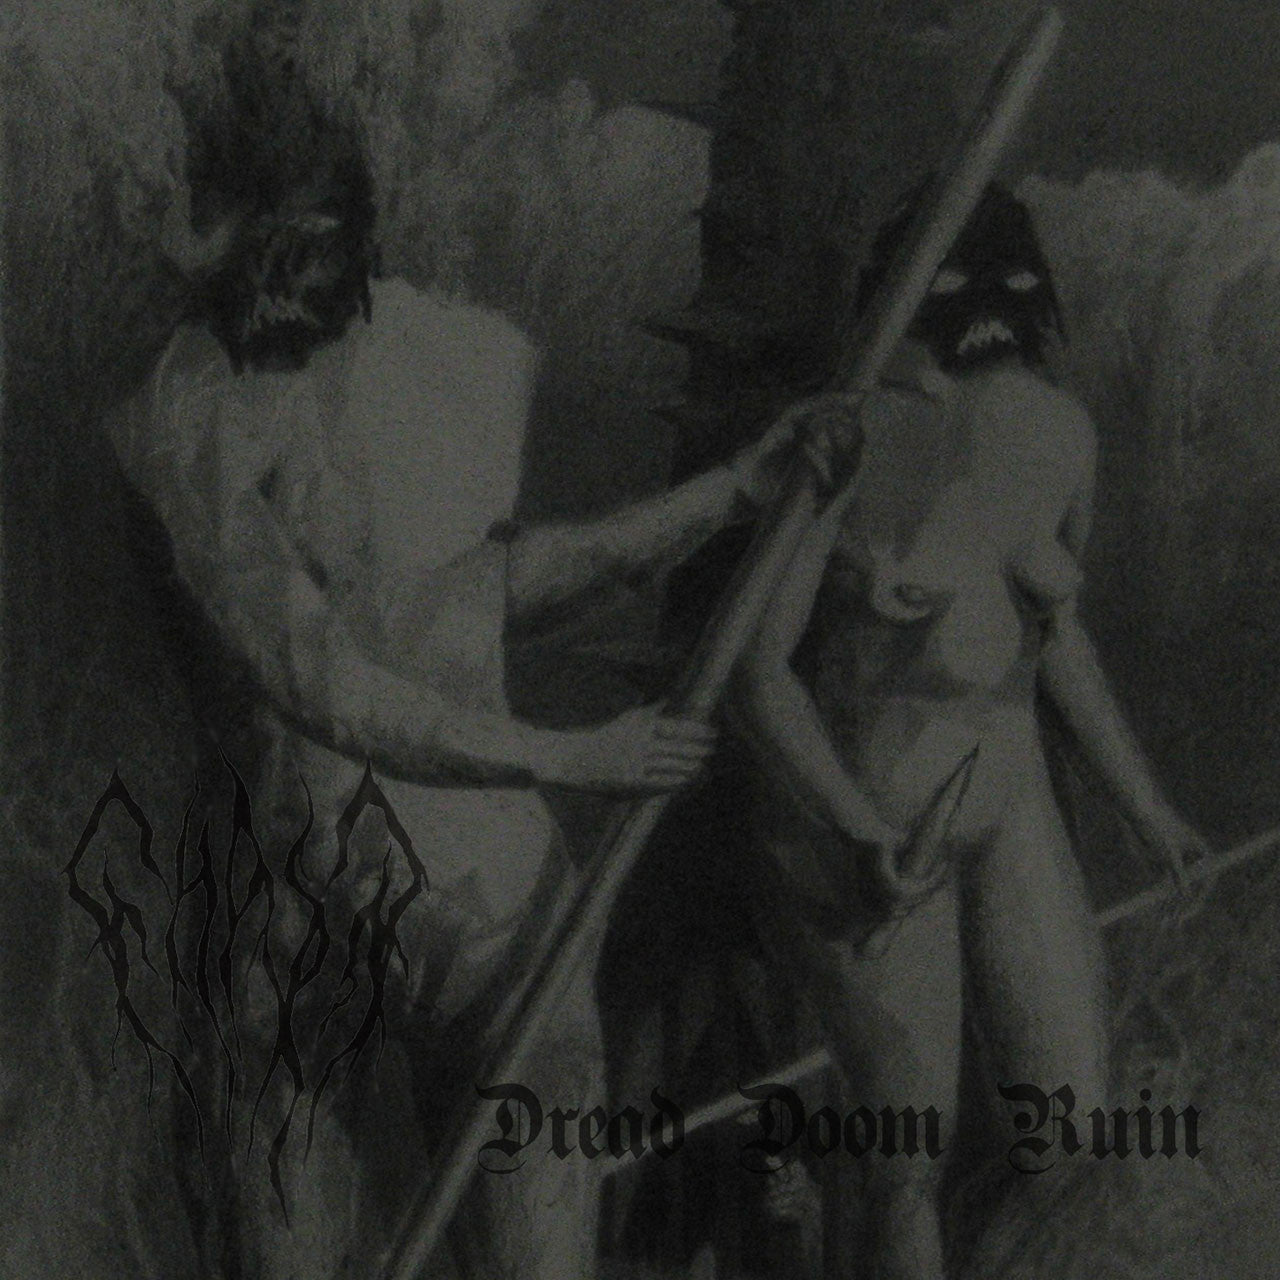 Ghast - Dread Doom Ruin (Digipak CD)